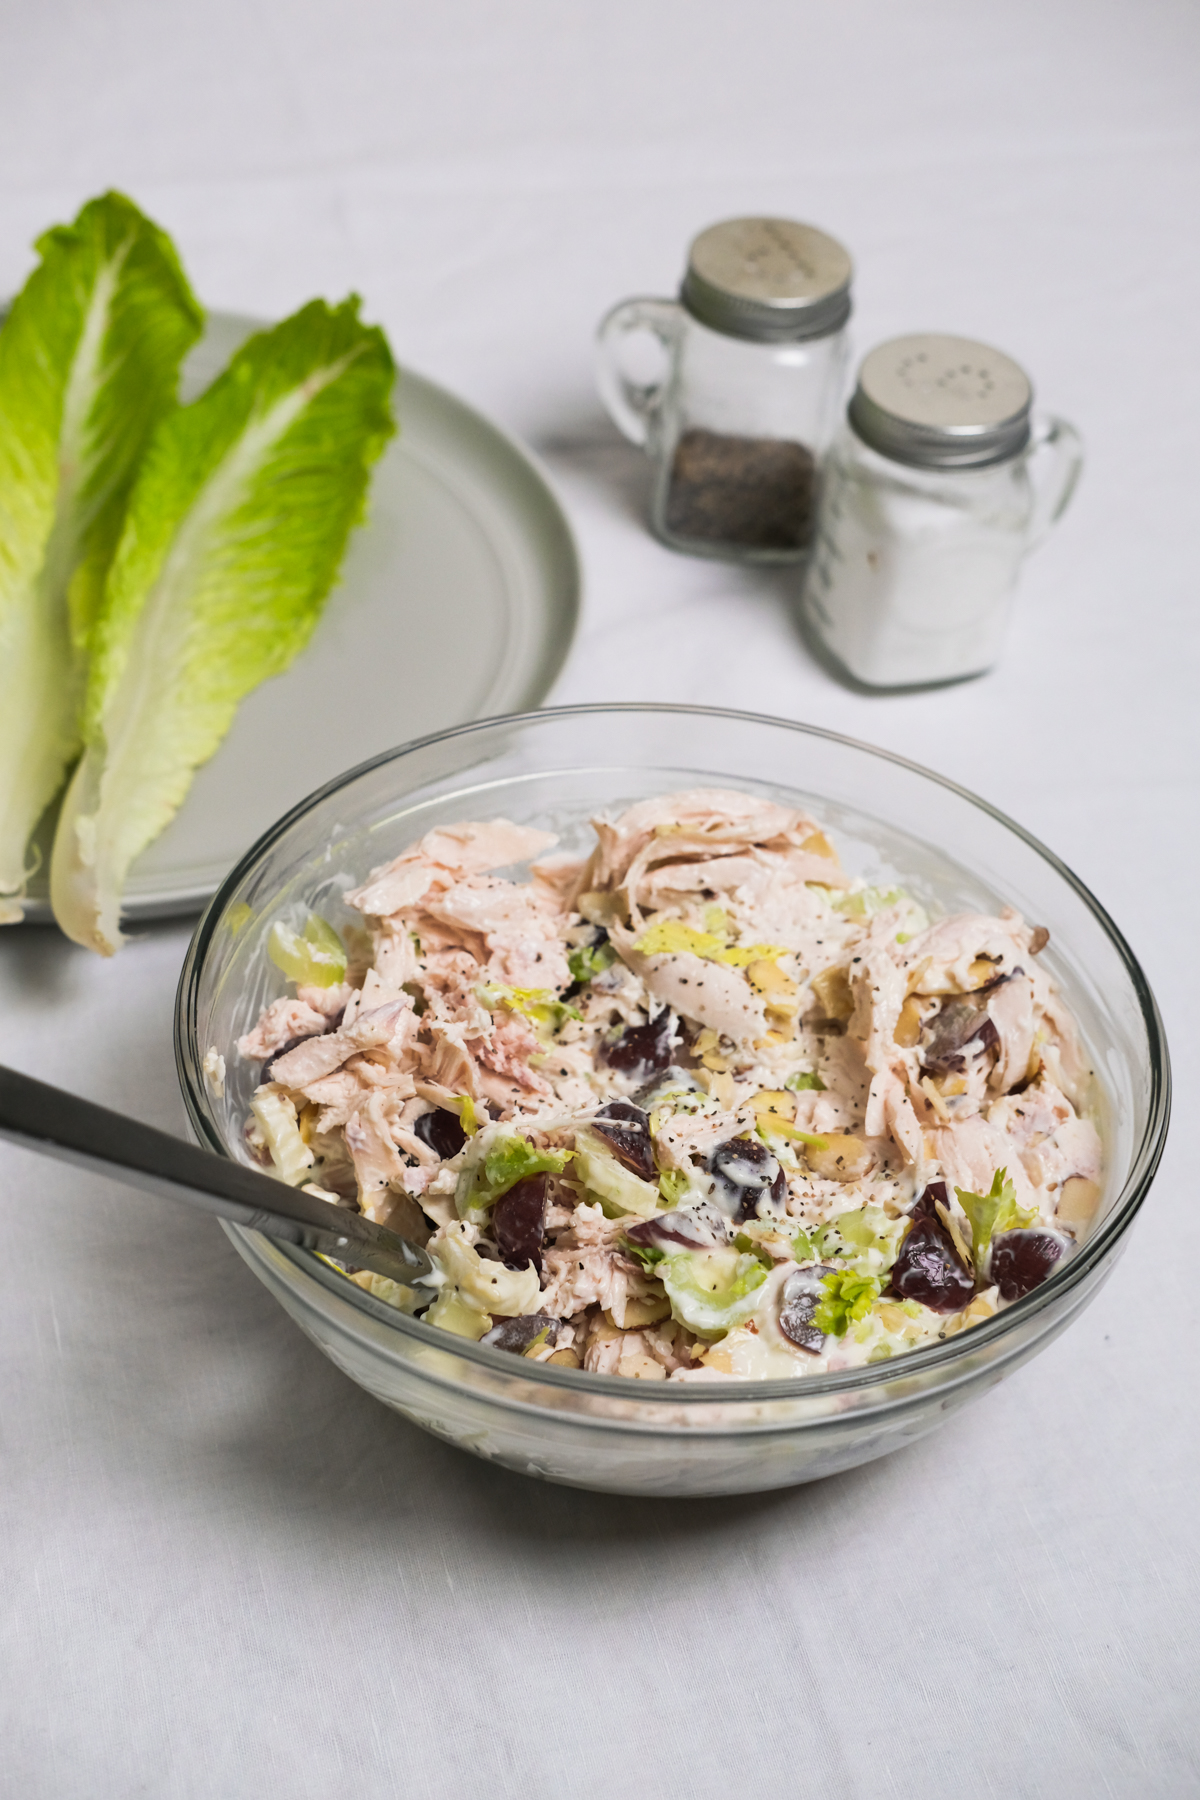 chicken salad in a bowl to make wraps